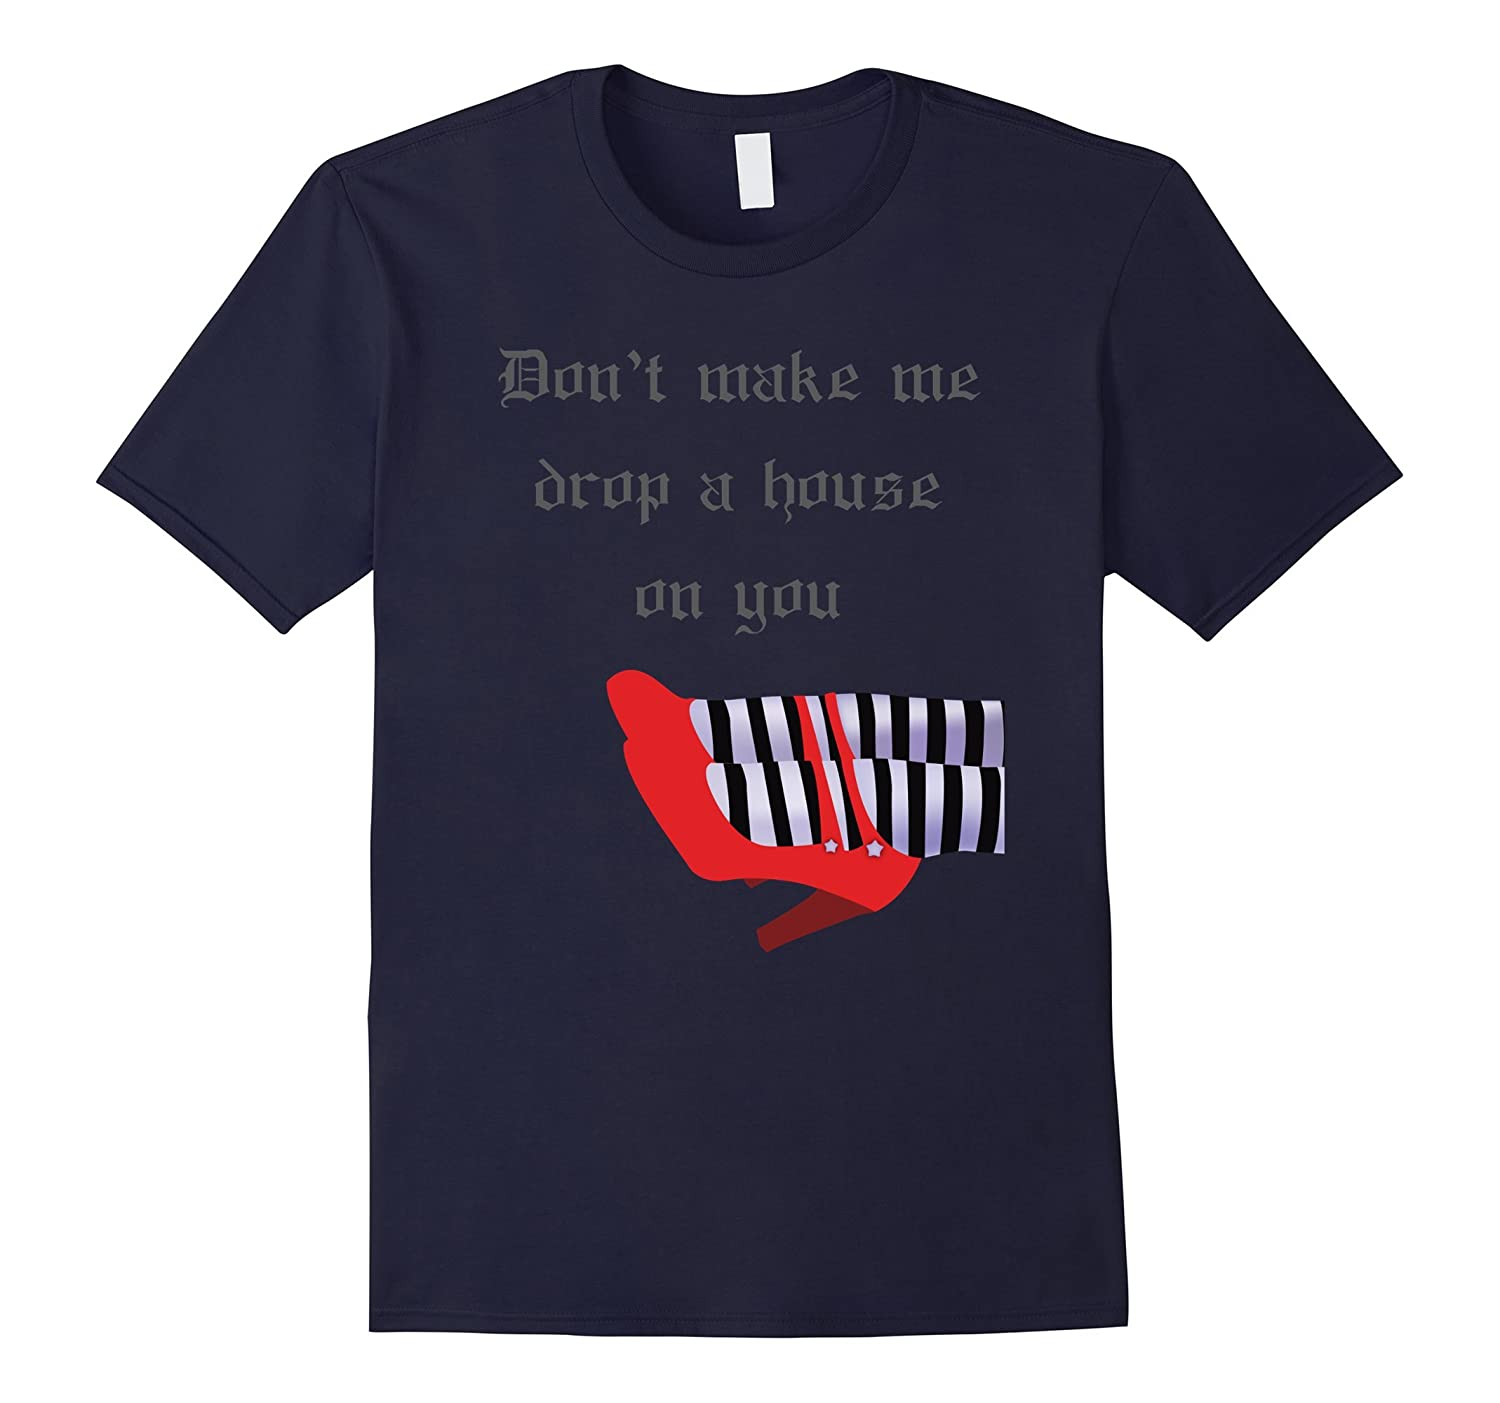 Don't Make Me Drop House On You West Witch Ruby Heels Tshirt-FL